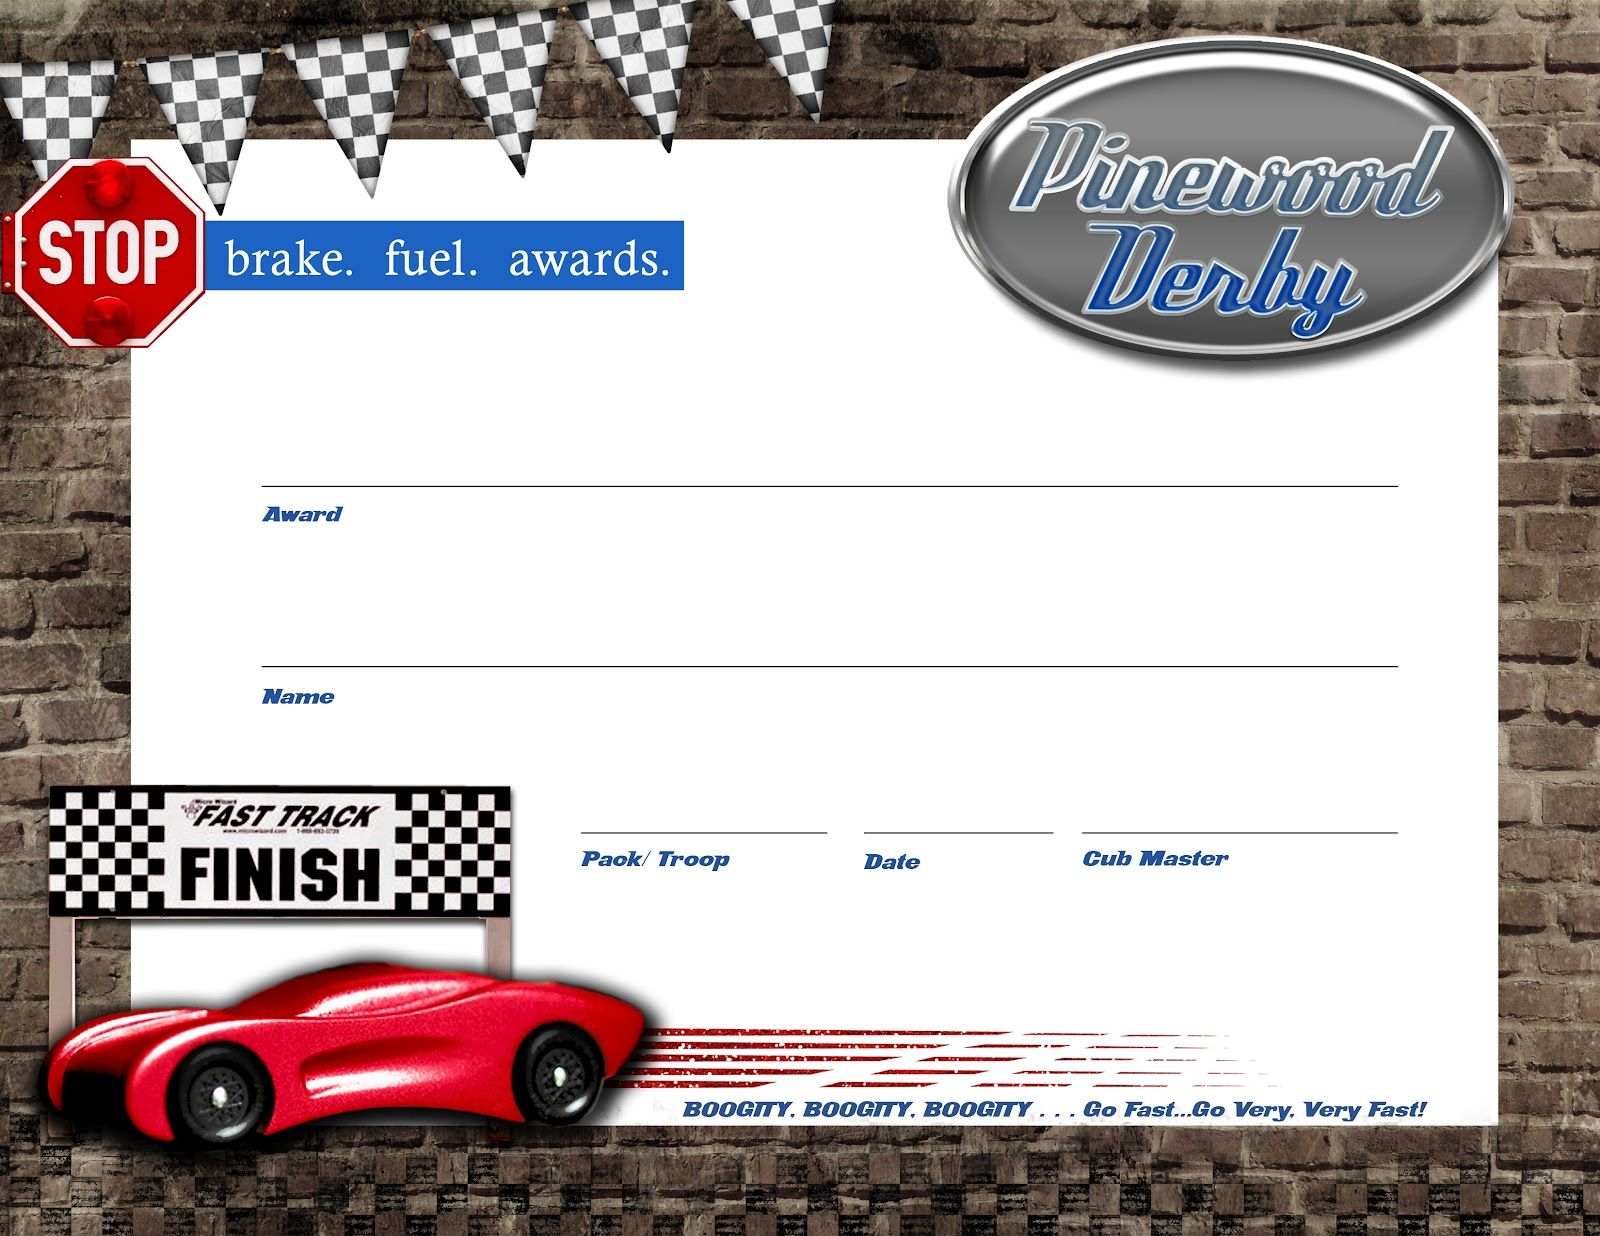 image about Free Printable Pinewood Derby Certificates titled Pinewood Derby Certification - totally free down load + lanyards Boy